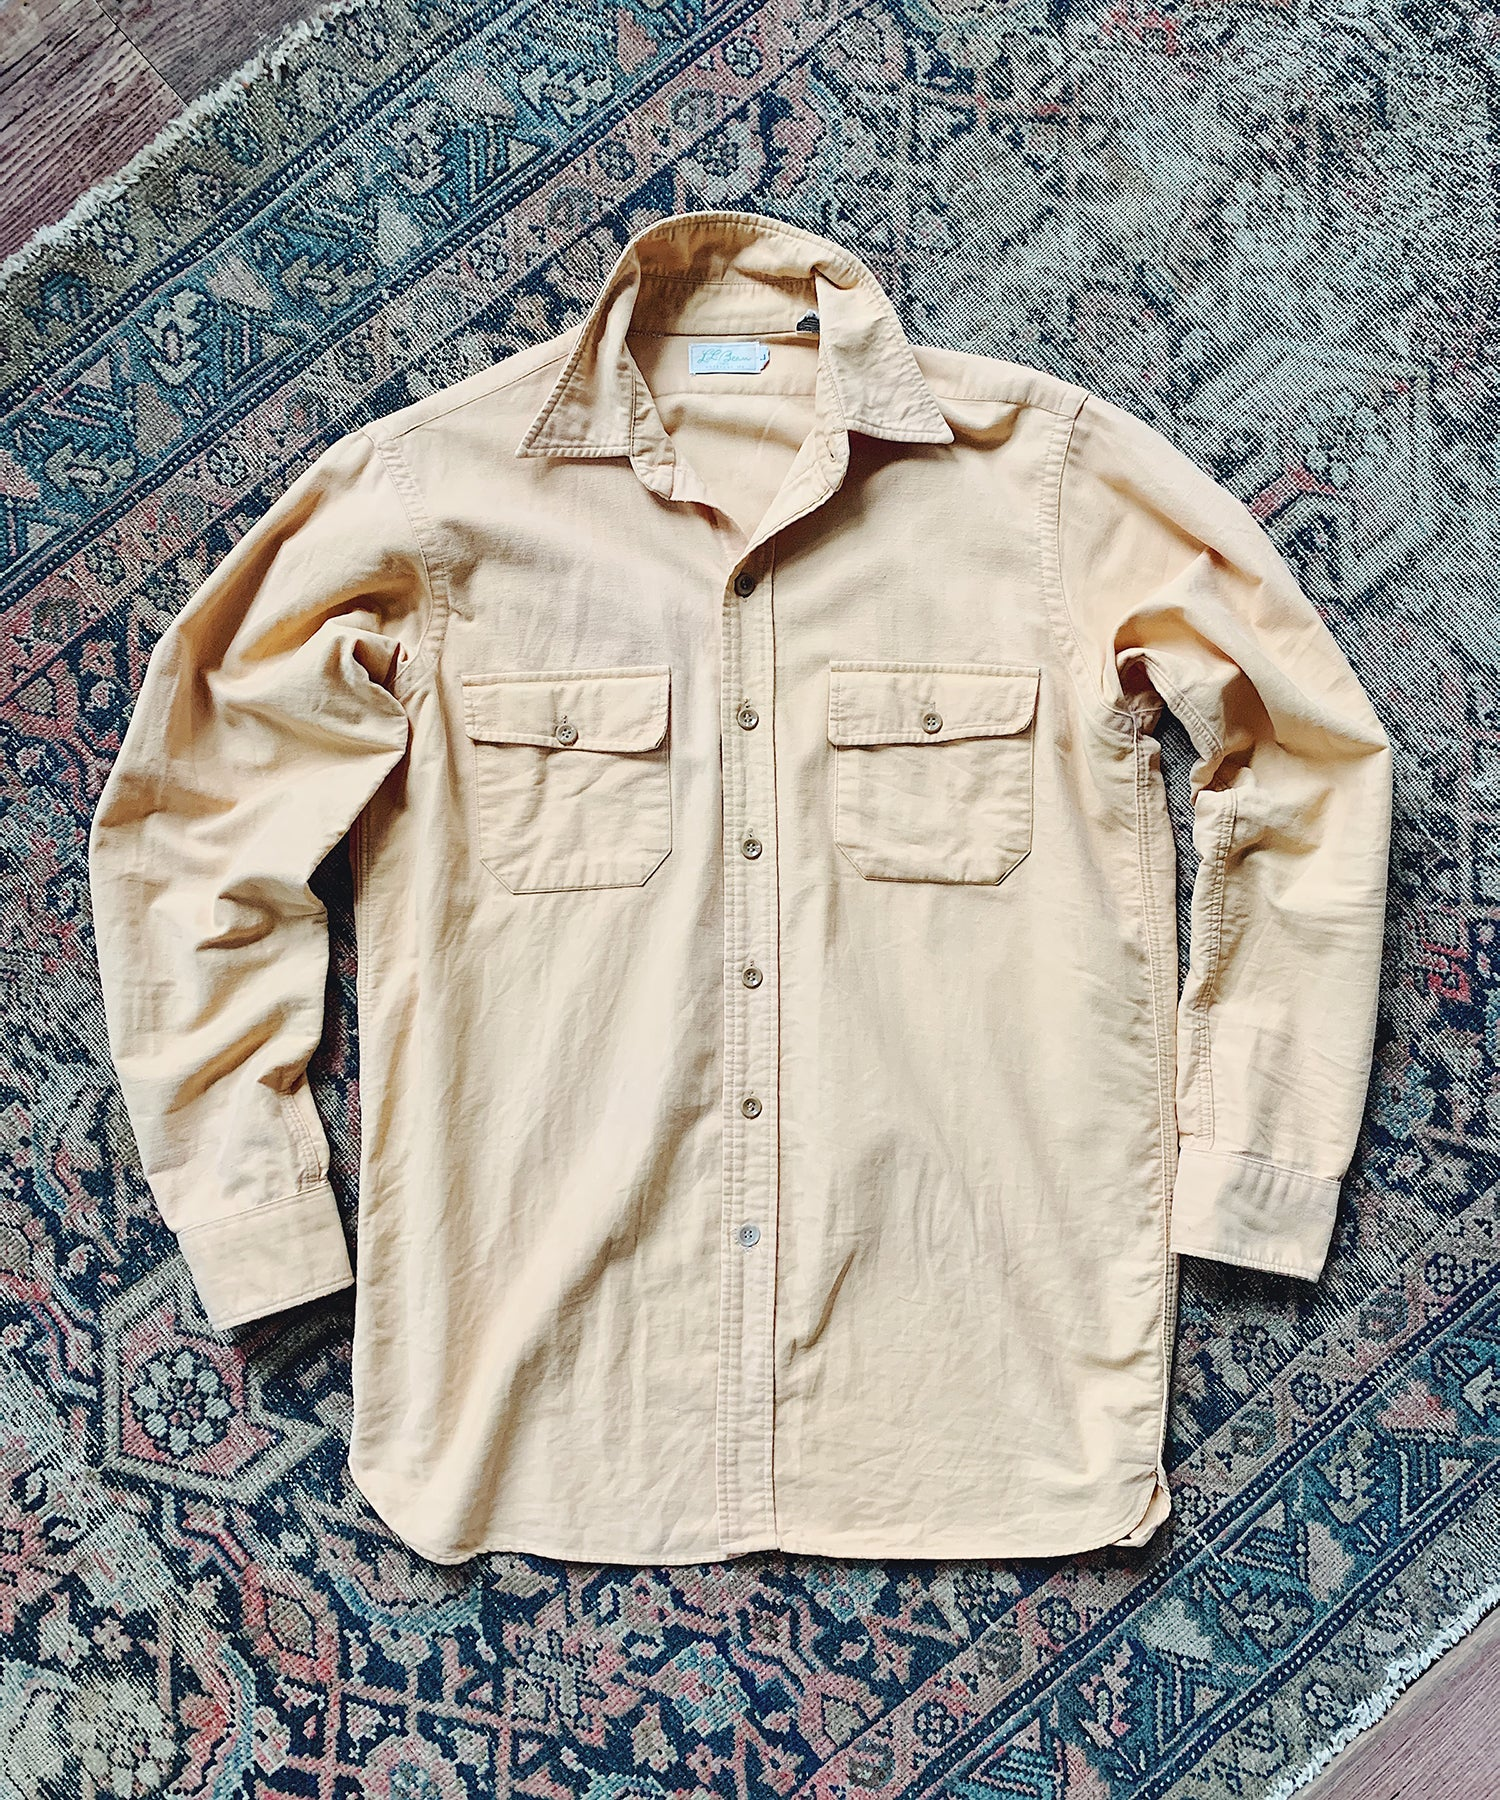 Item #1 - Todd Snyder x Wooden Sleepers 1960's Chamois Shirt in Yellow - SOLD OUT